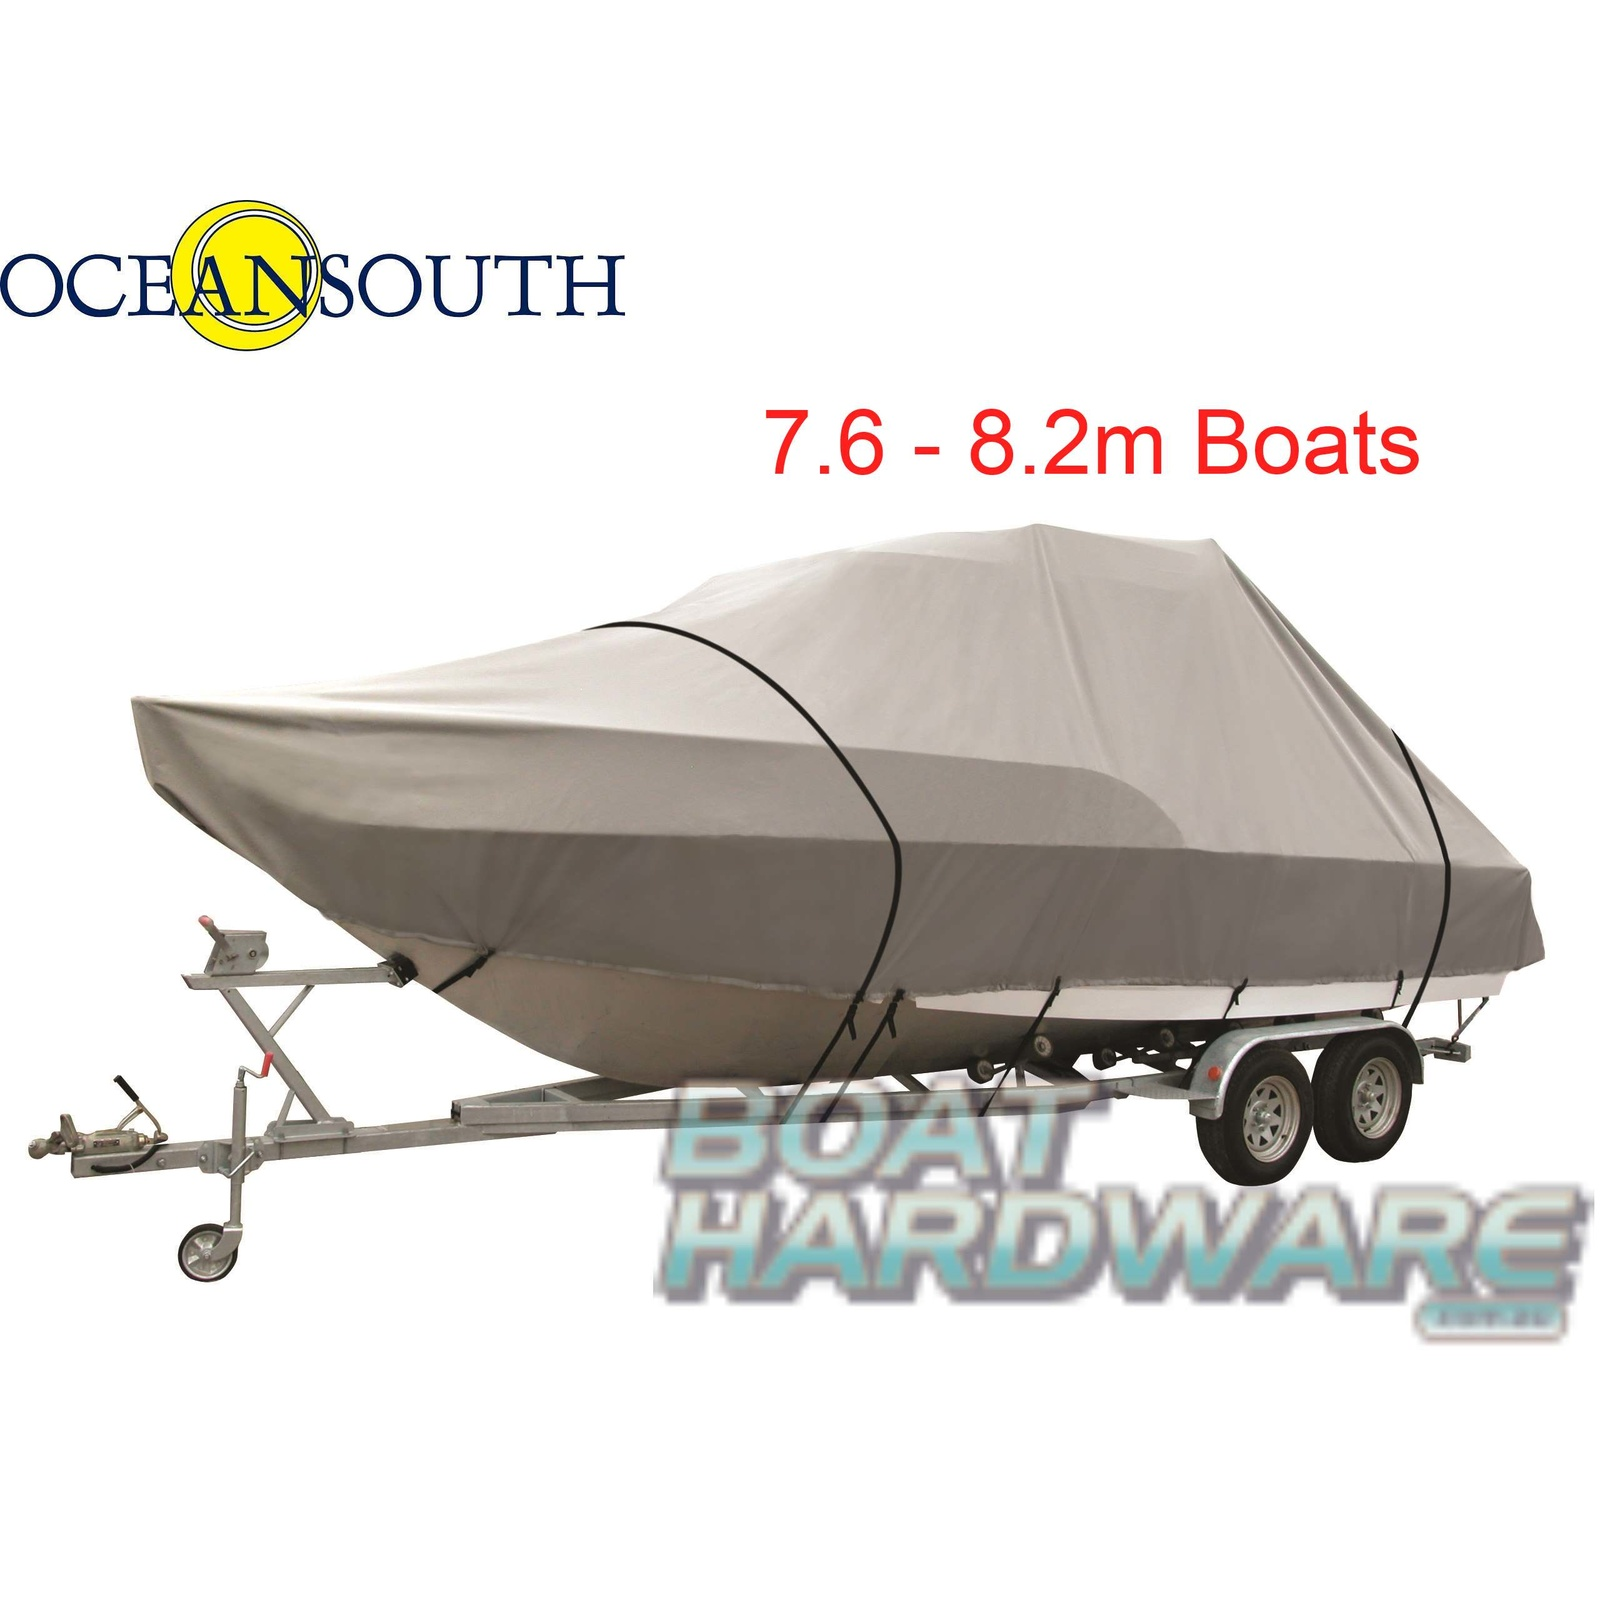 Jumbo Boat Cover (7.6 up to 8.2m) MA501-4